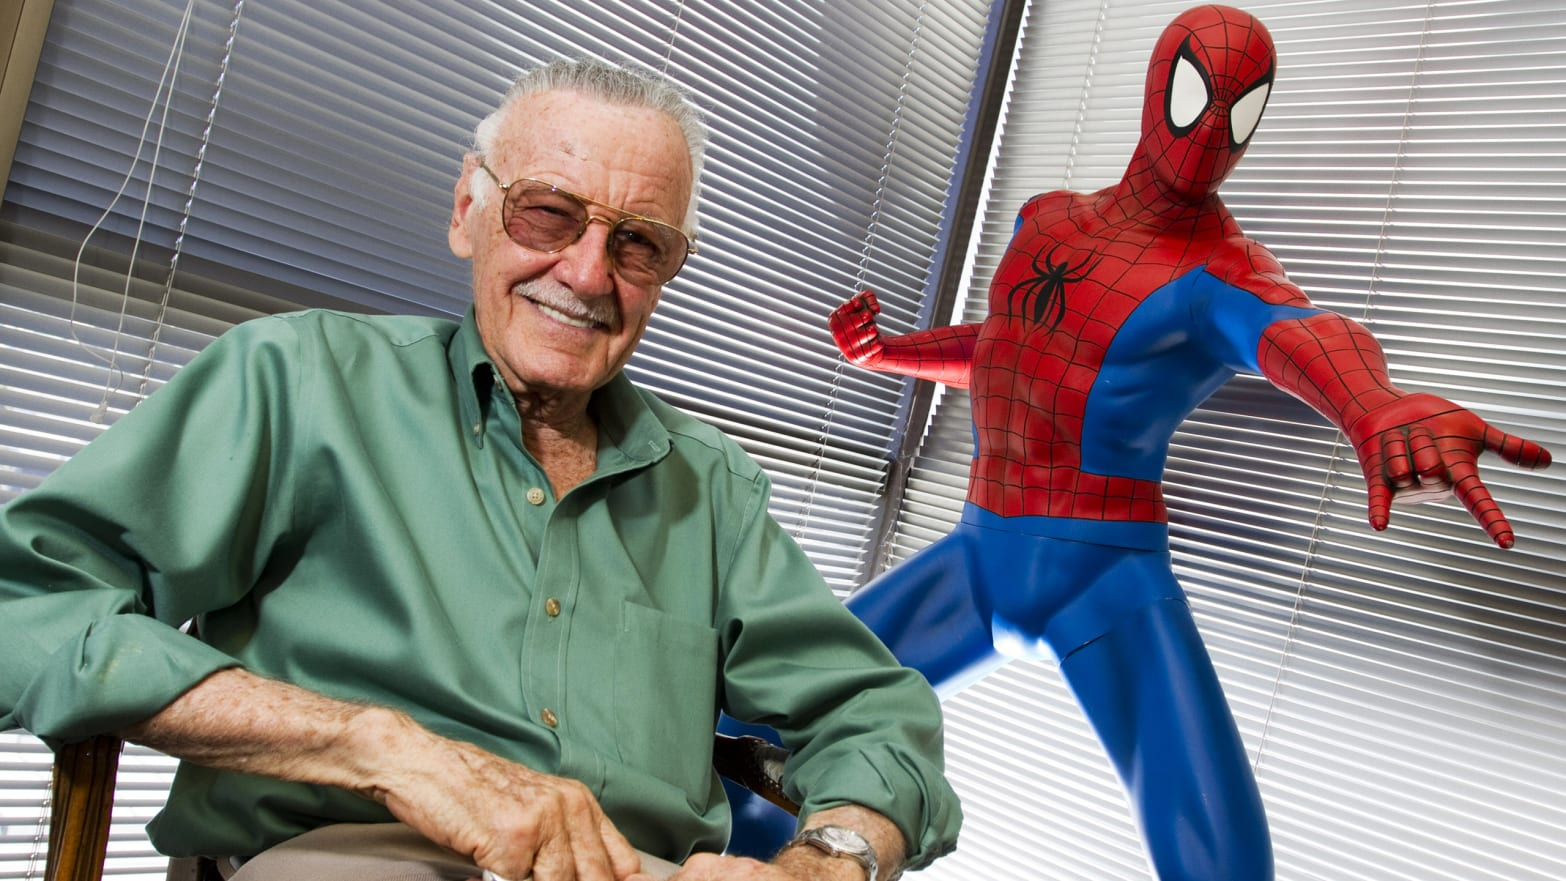 Marvel Icon Stan Lee Leaves a Legacy as Complex as His